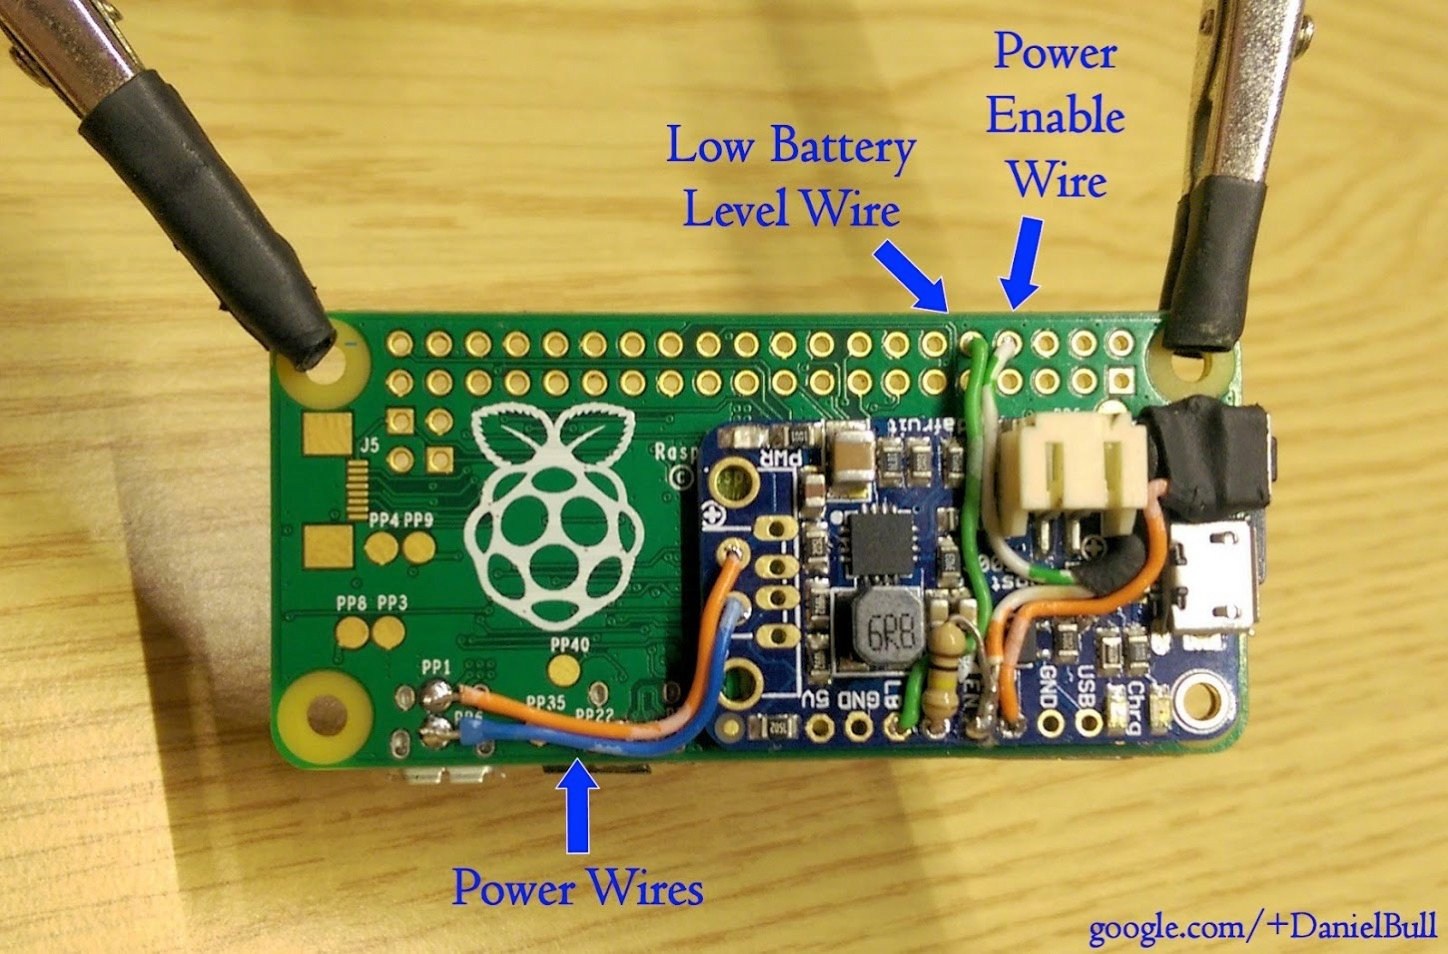 How To Run A Pi Zero And Other Pis From Lipo Including Low Ir Detector Circuit Hacked Gadgets Diy Tech Blog Super Useful Hack Daniel Bull Posted On Google Plus Via Raspberrypipod